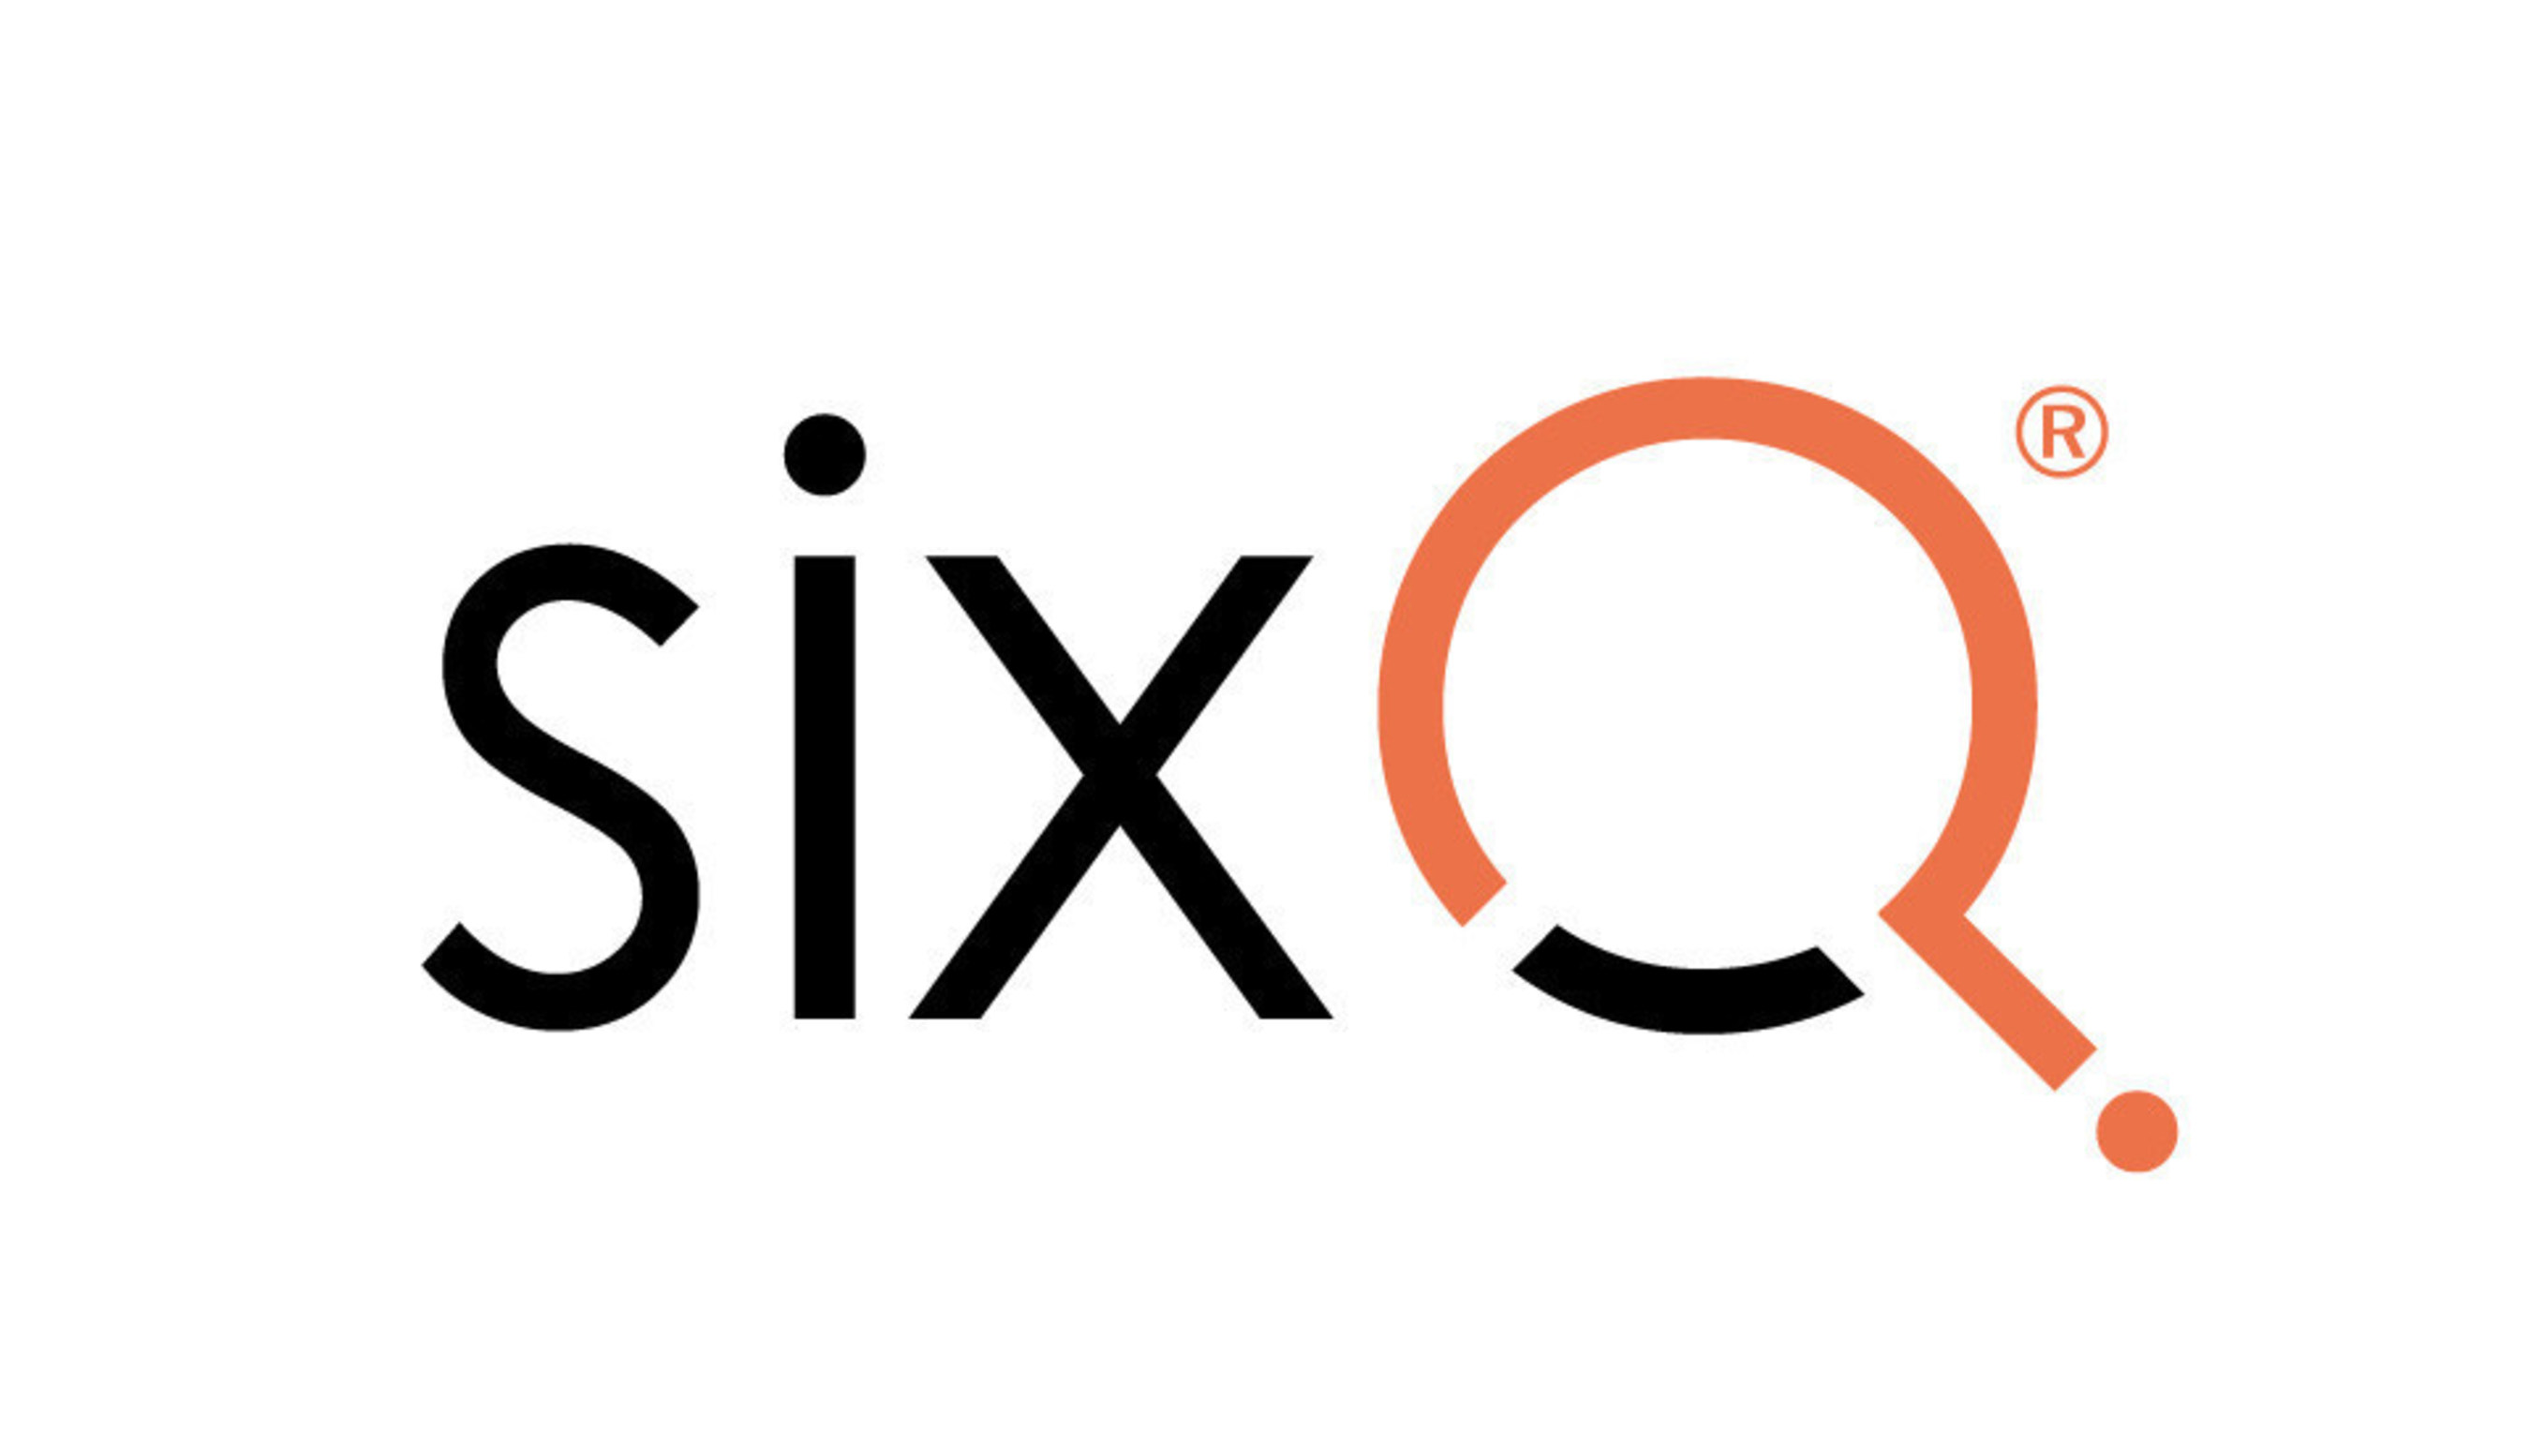 sixQ, the World's First PeopleStrategy Assessment Company